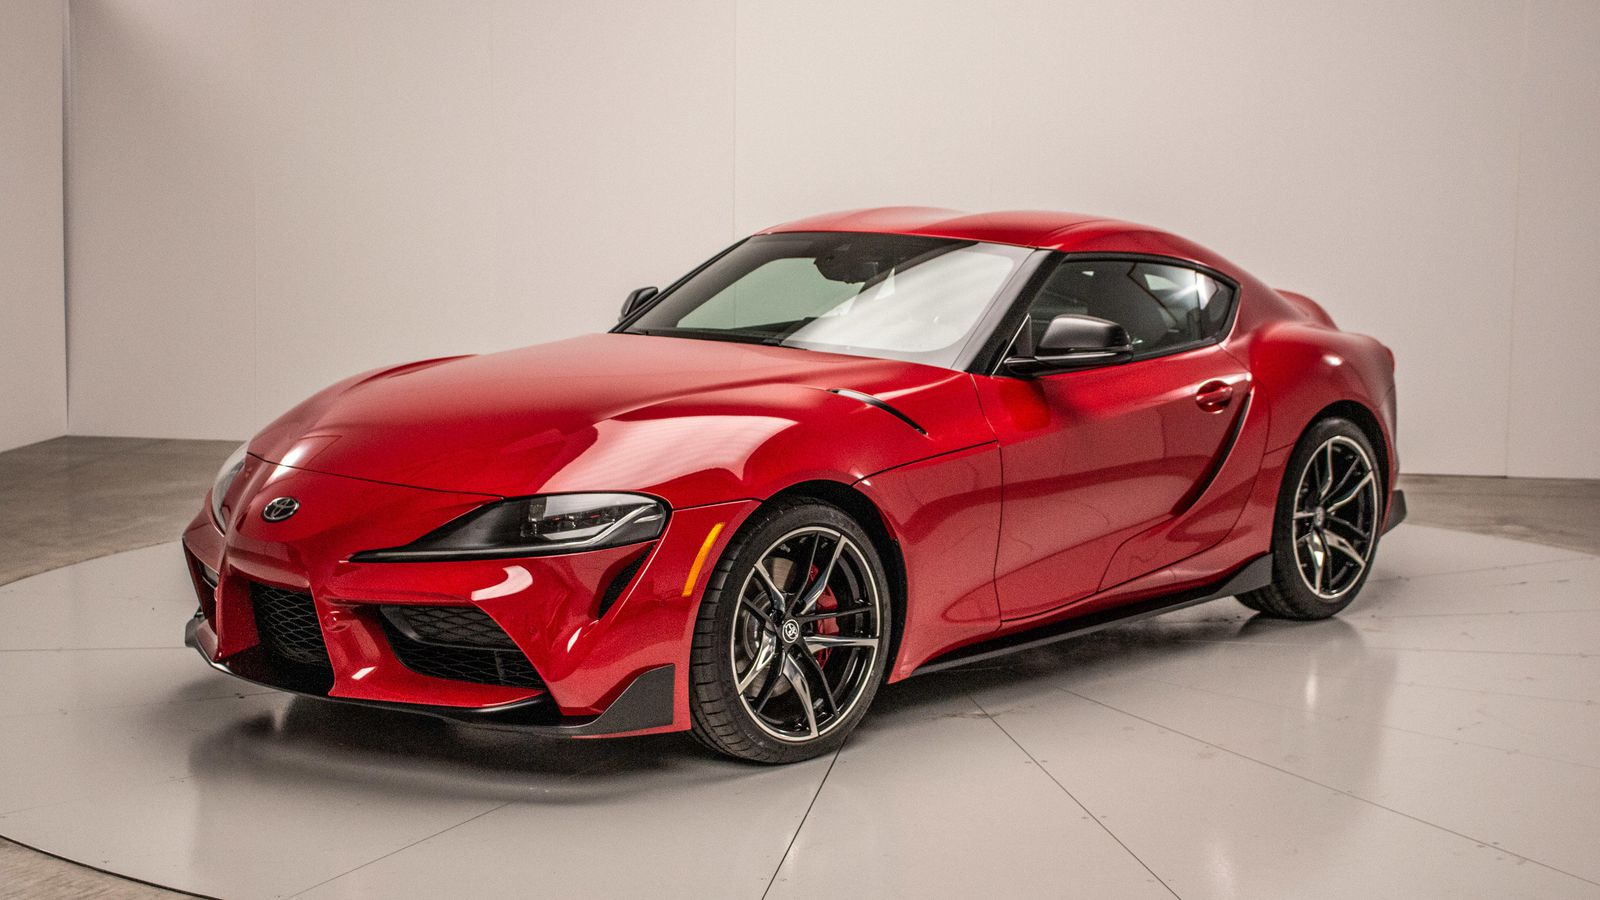 60 New 2020 Toyota Supra Release Date and Concept